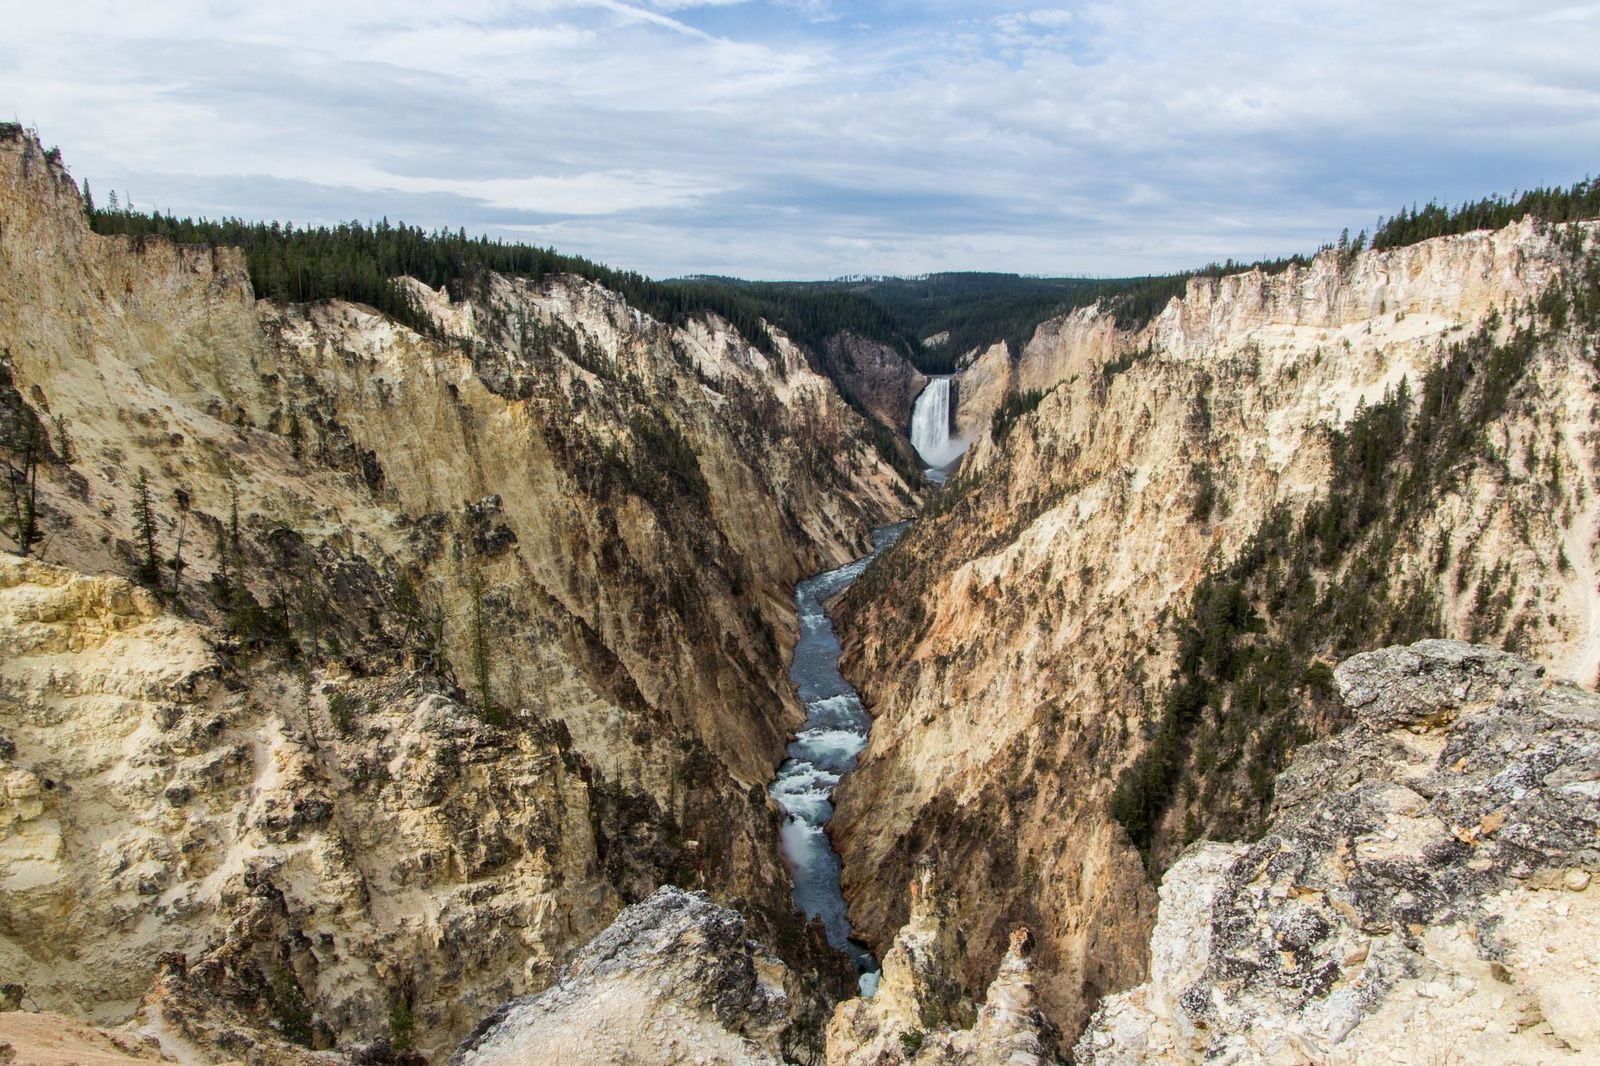 Le Parc National du Yellowstone - East Side